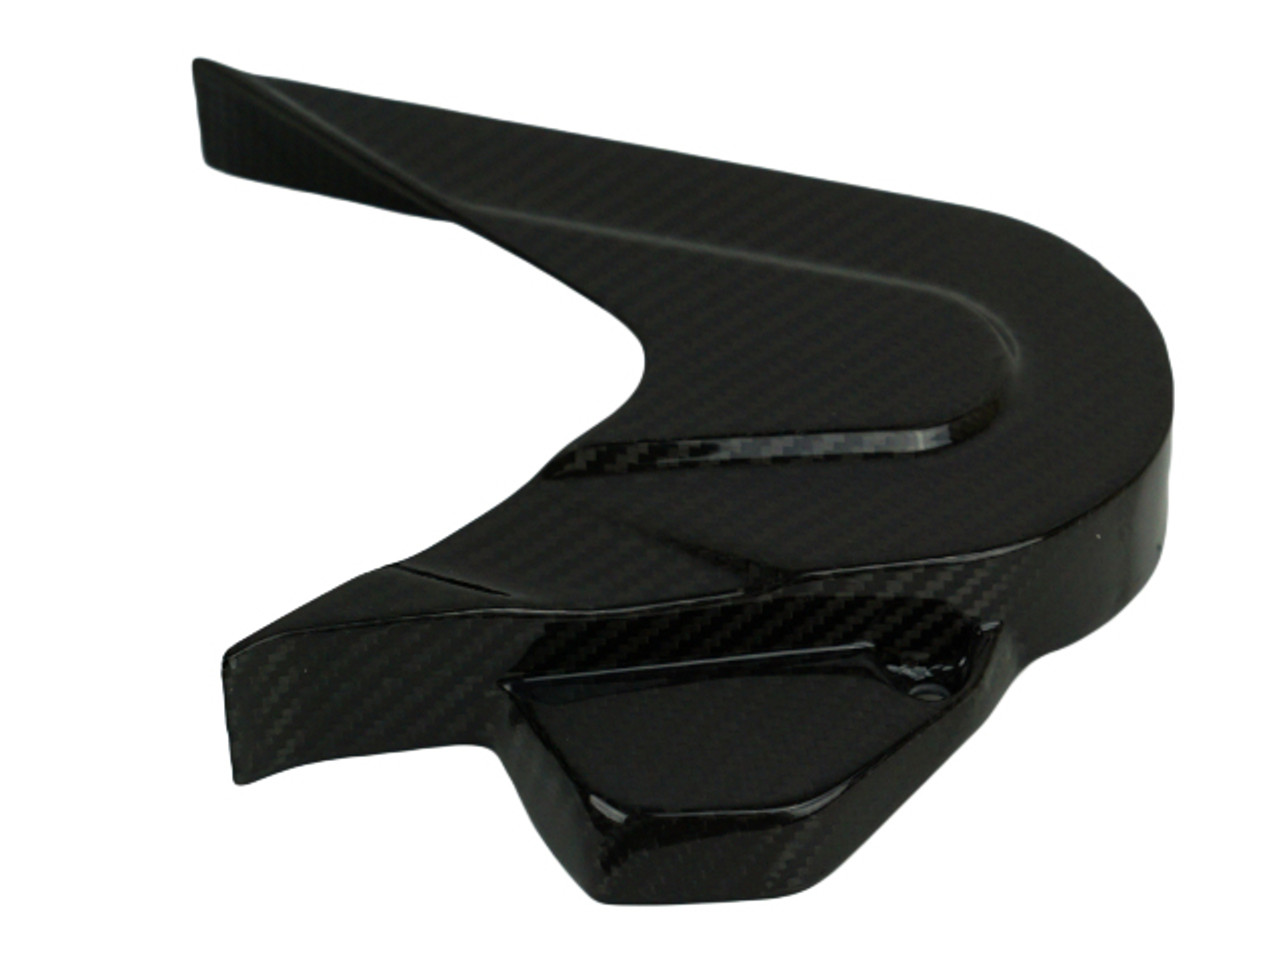 Sprocket Cover in Glossy Twill Weave shown for KTM Duke 790.